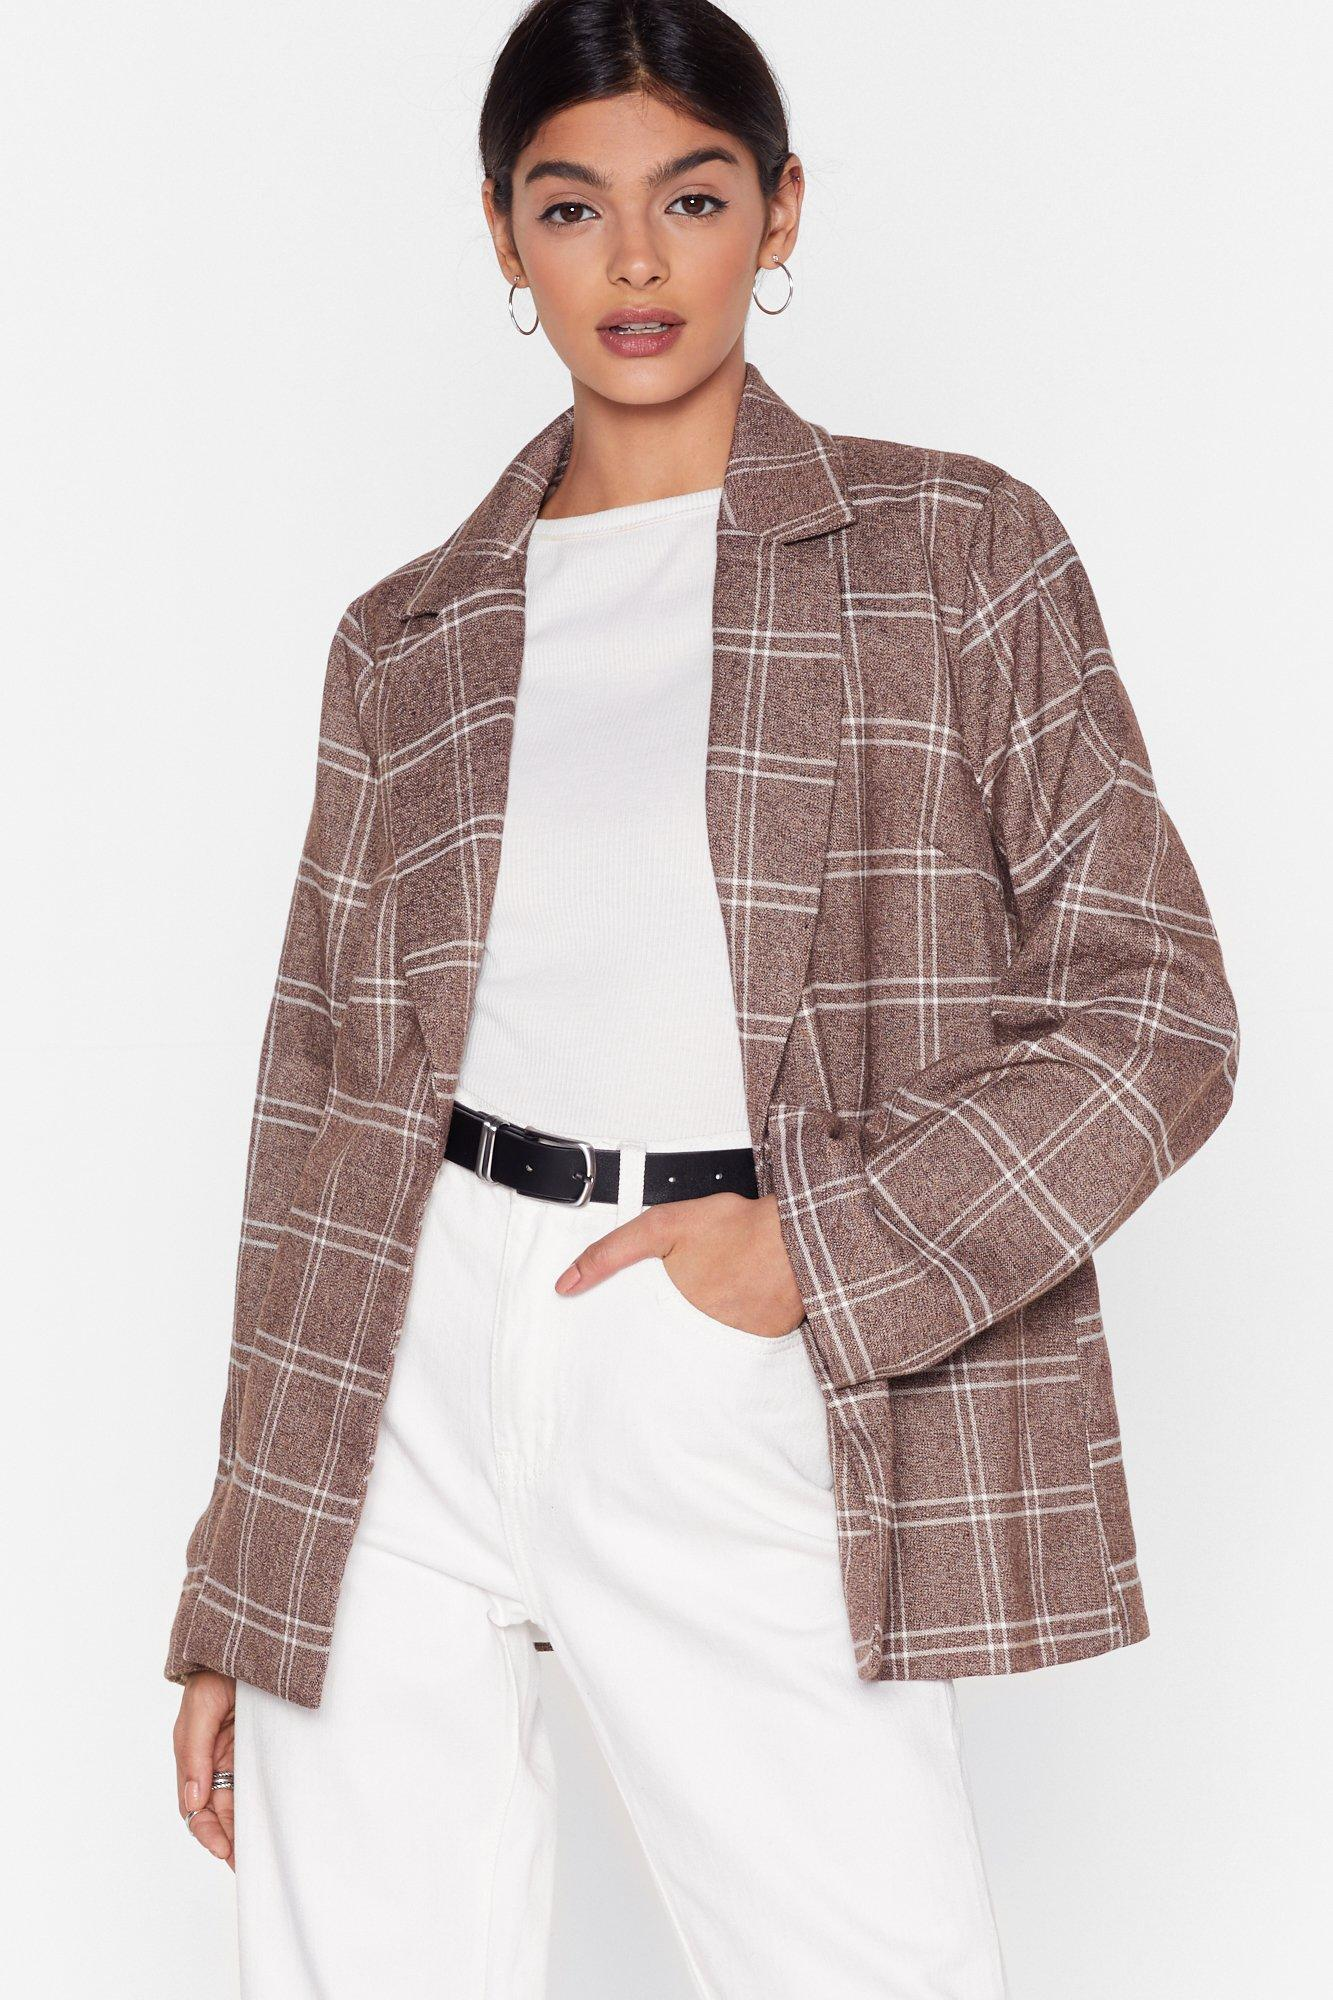 Image of Grid I Forget to Mention Oversized Check Blazer